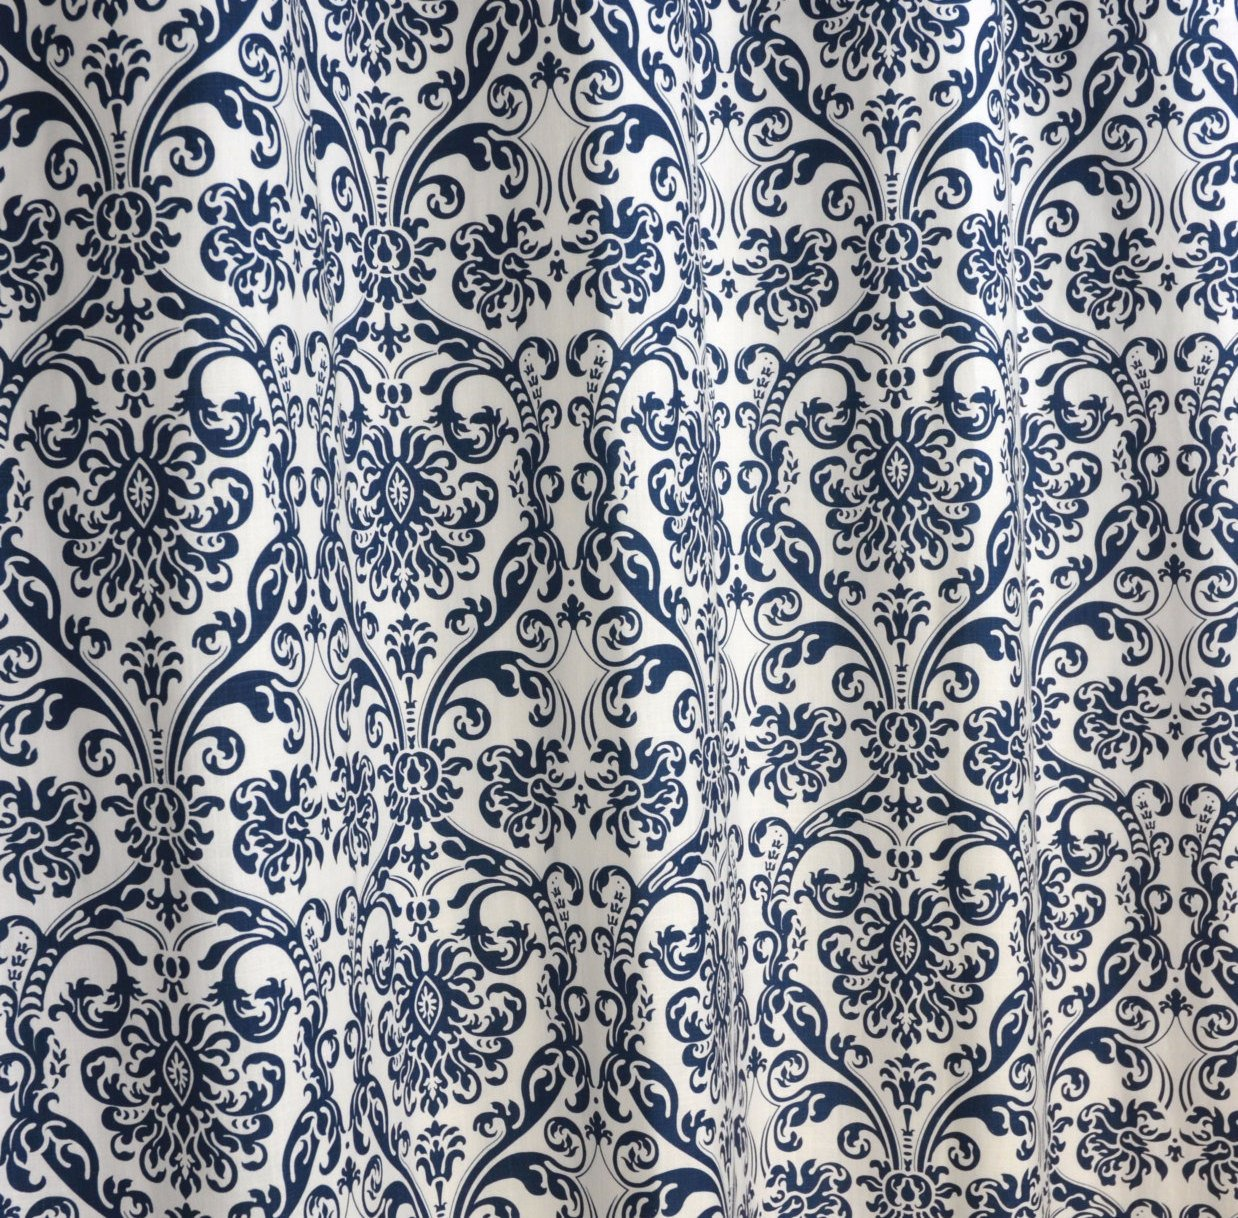 understandings curtains damask drapes tag collaborative